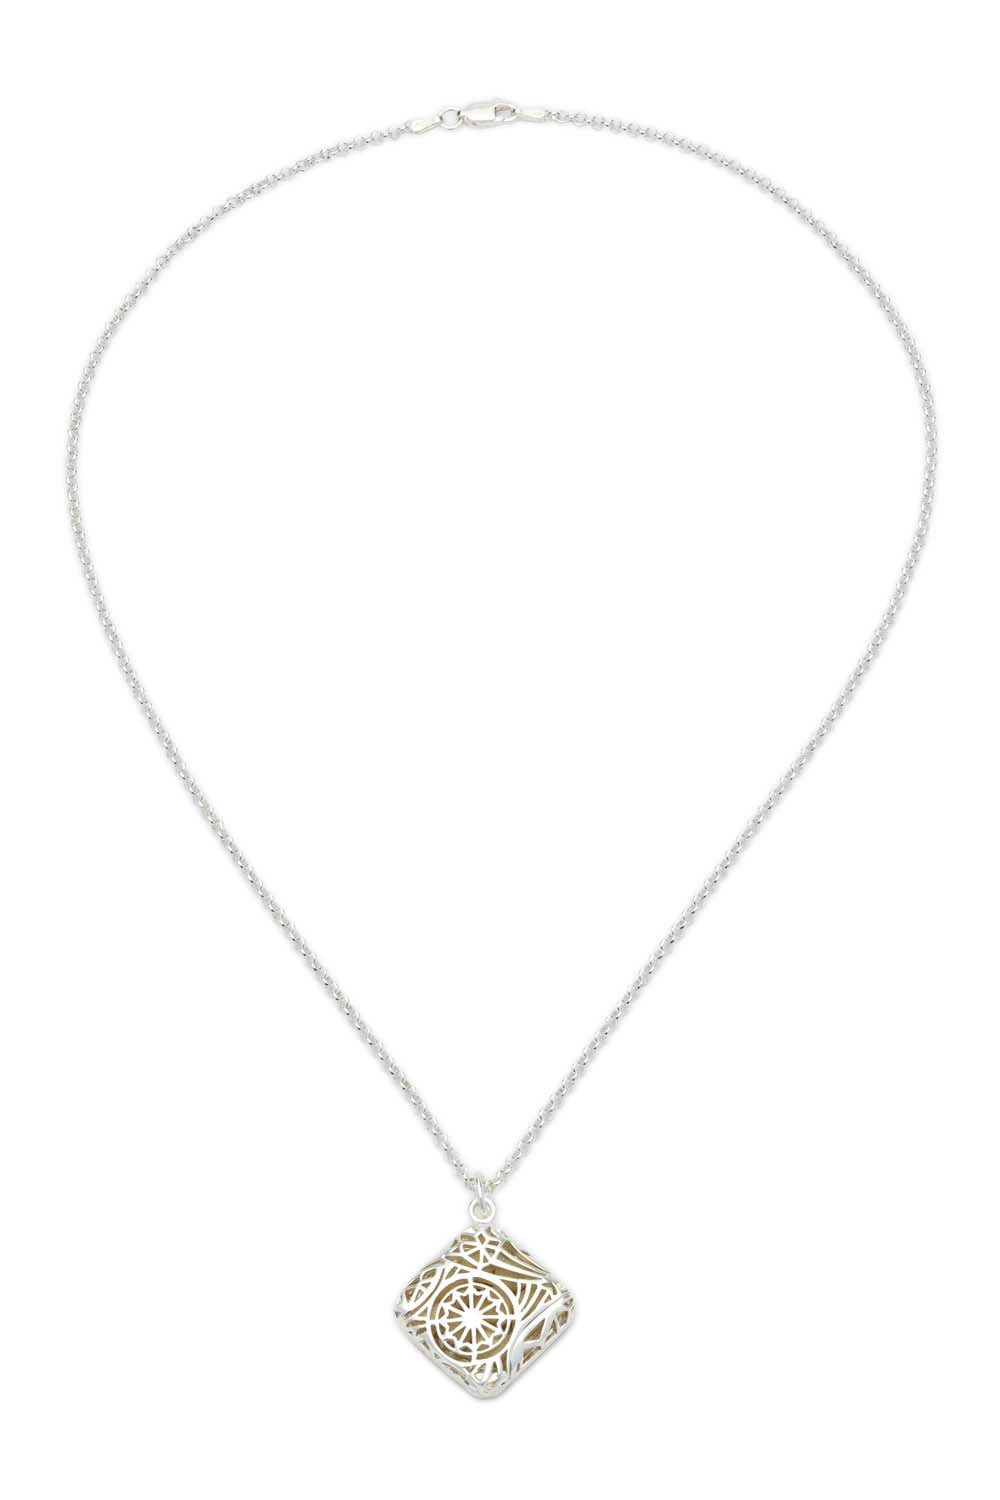 "30"" Wanderlust Necklace - Silver"